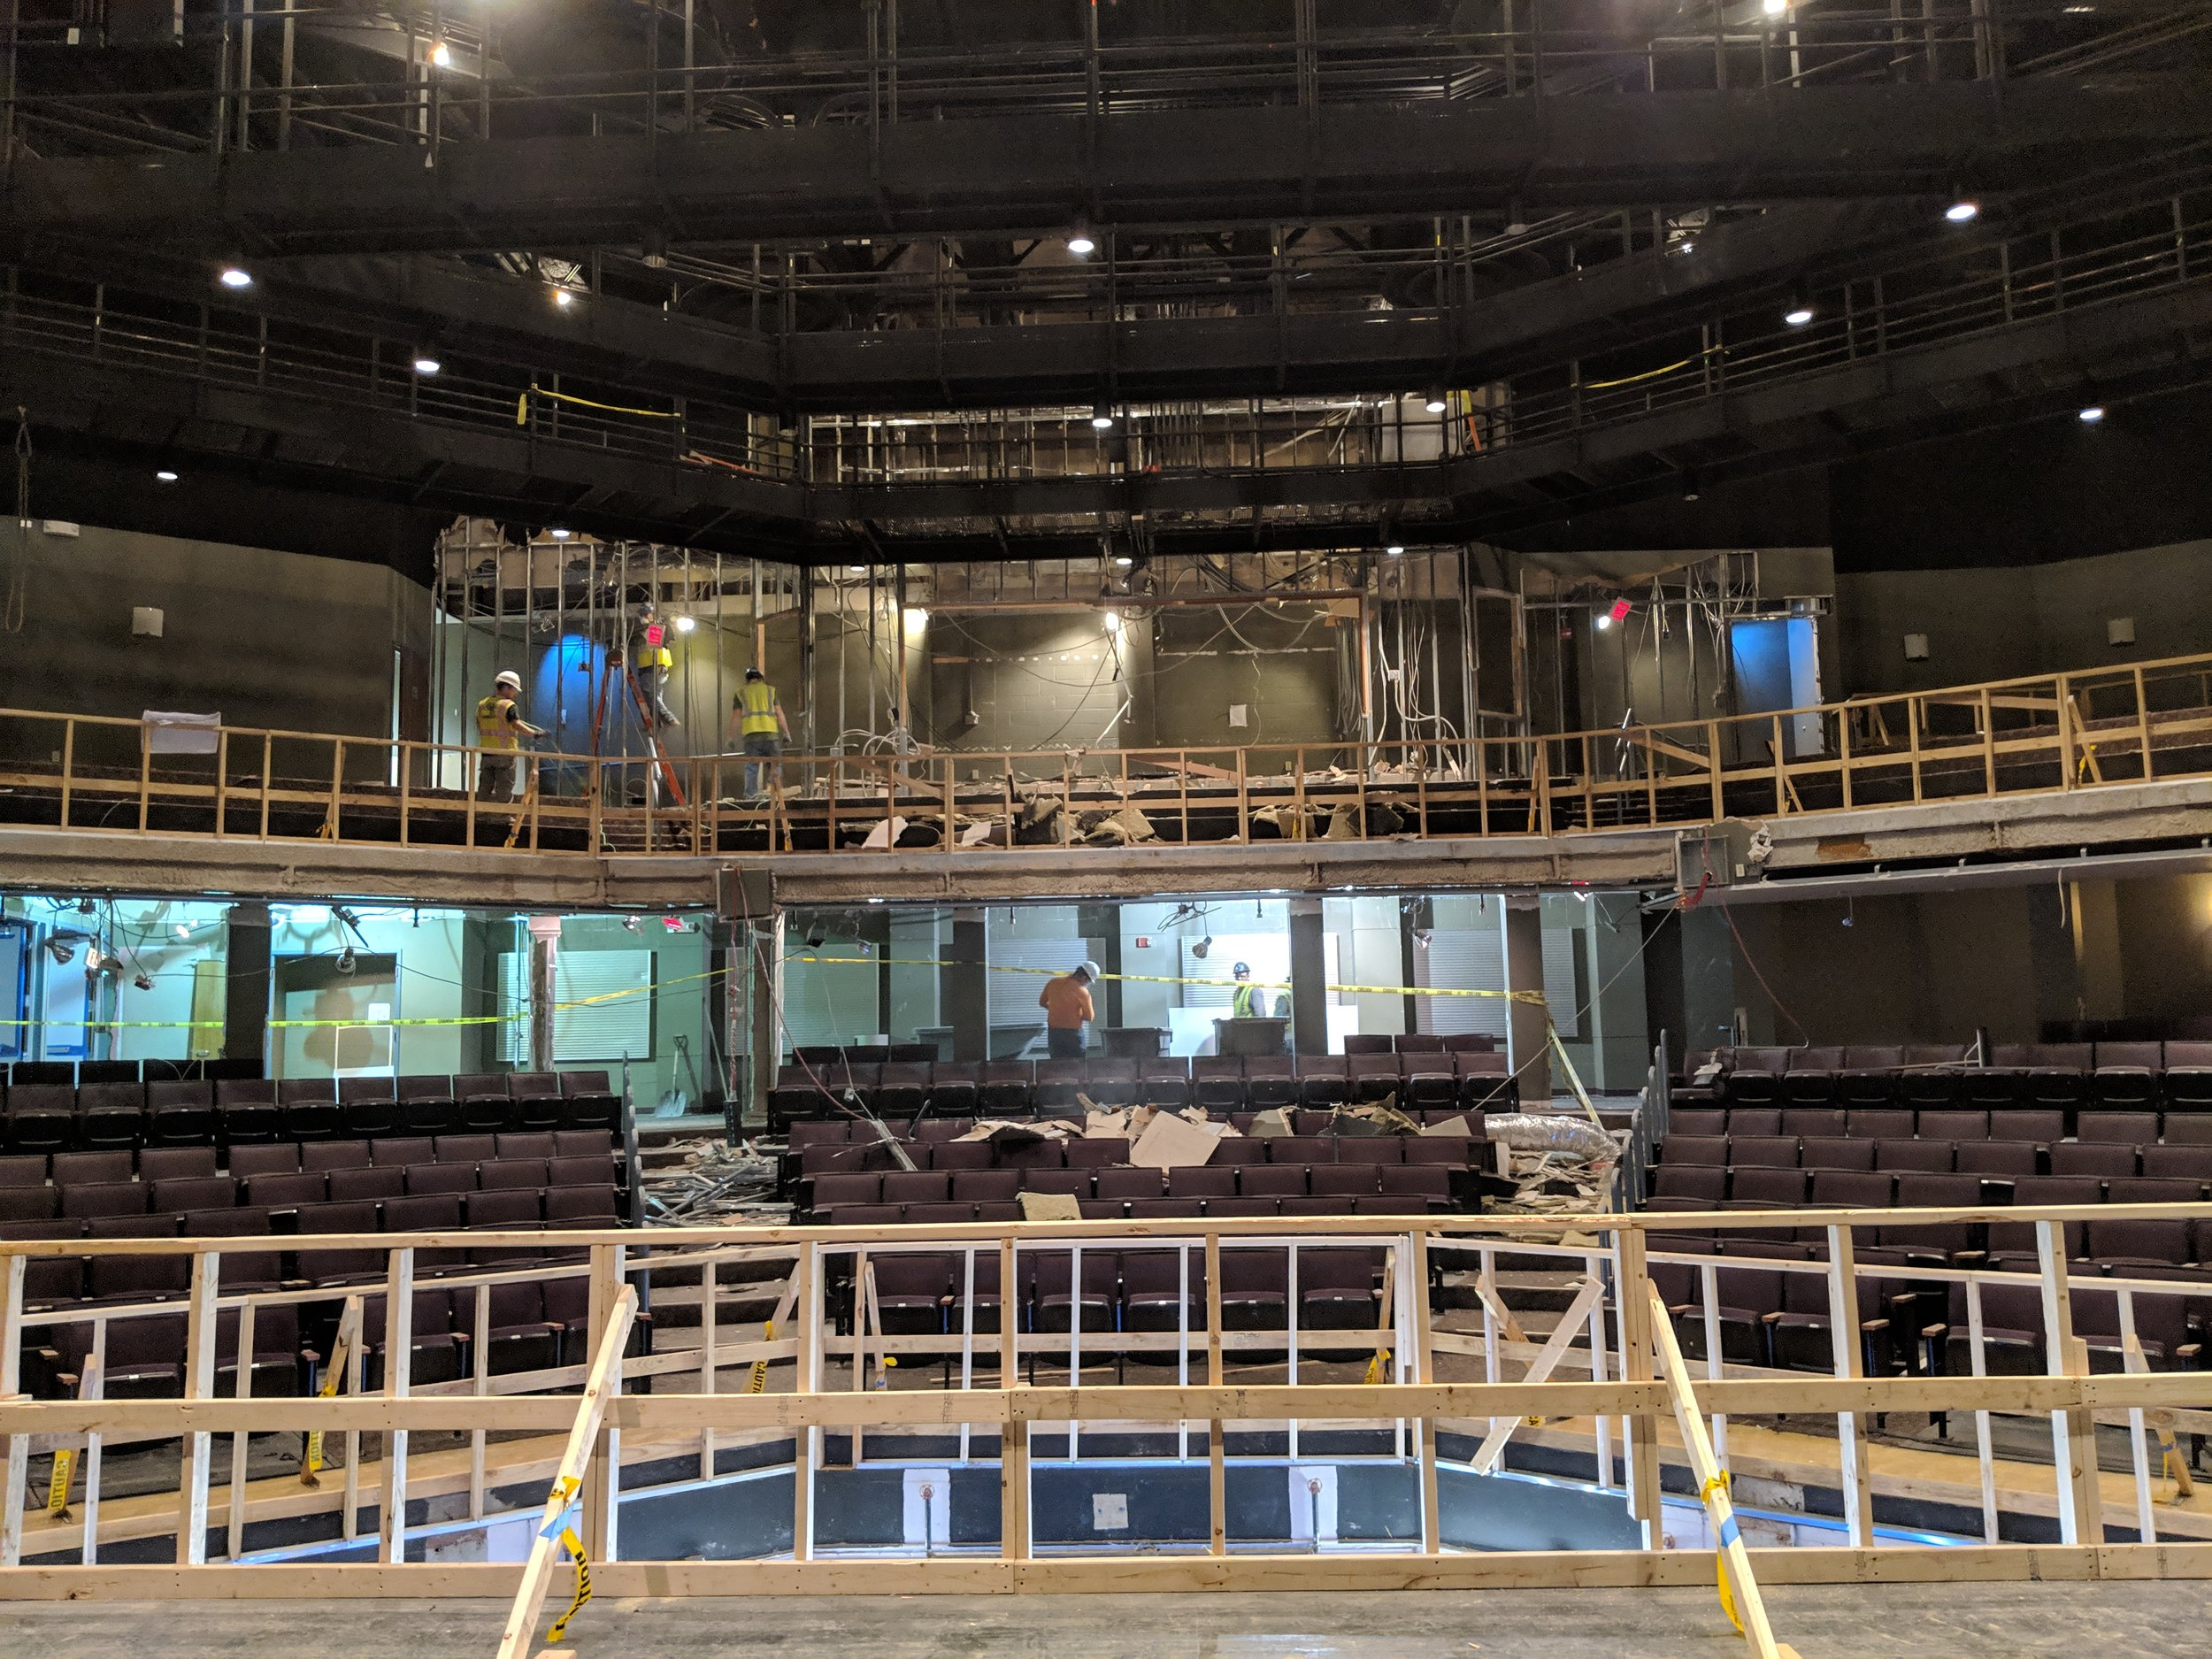 January 2019  - The view from the stage is very different now! The control booth walls up in the balcony have been torn down, as well as the walls in the back of the house.